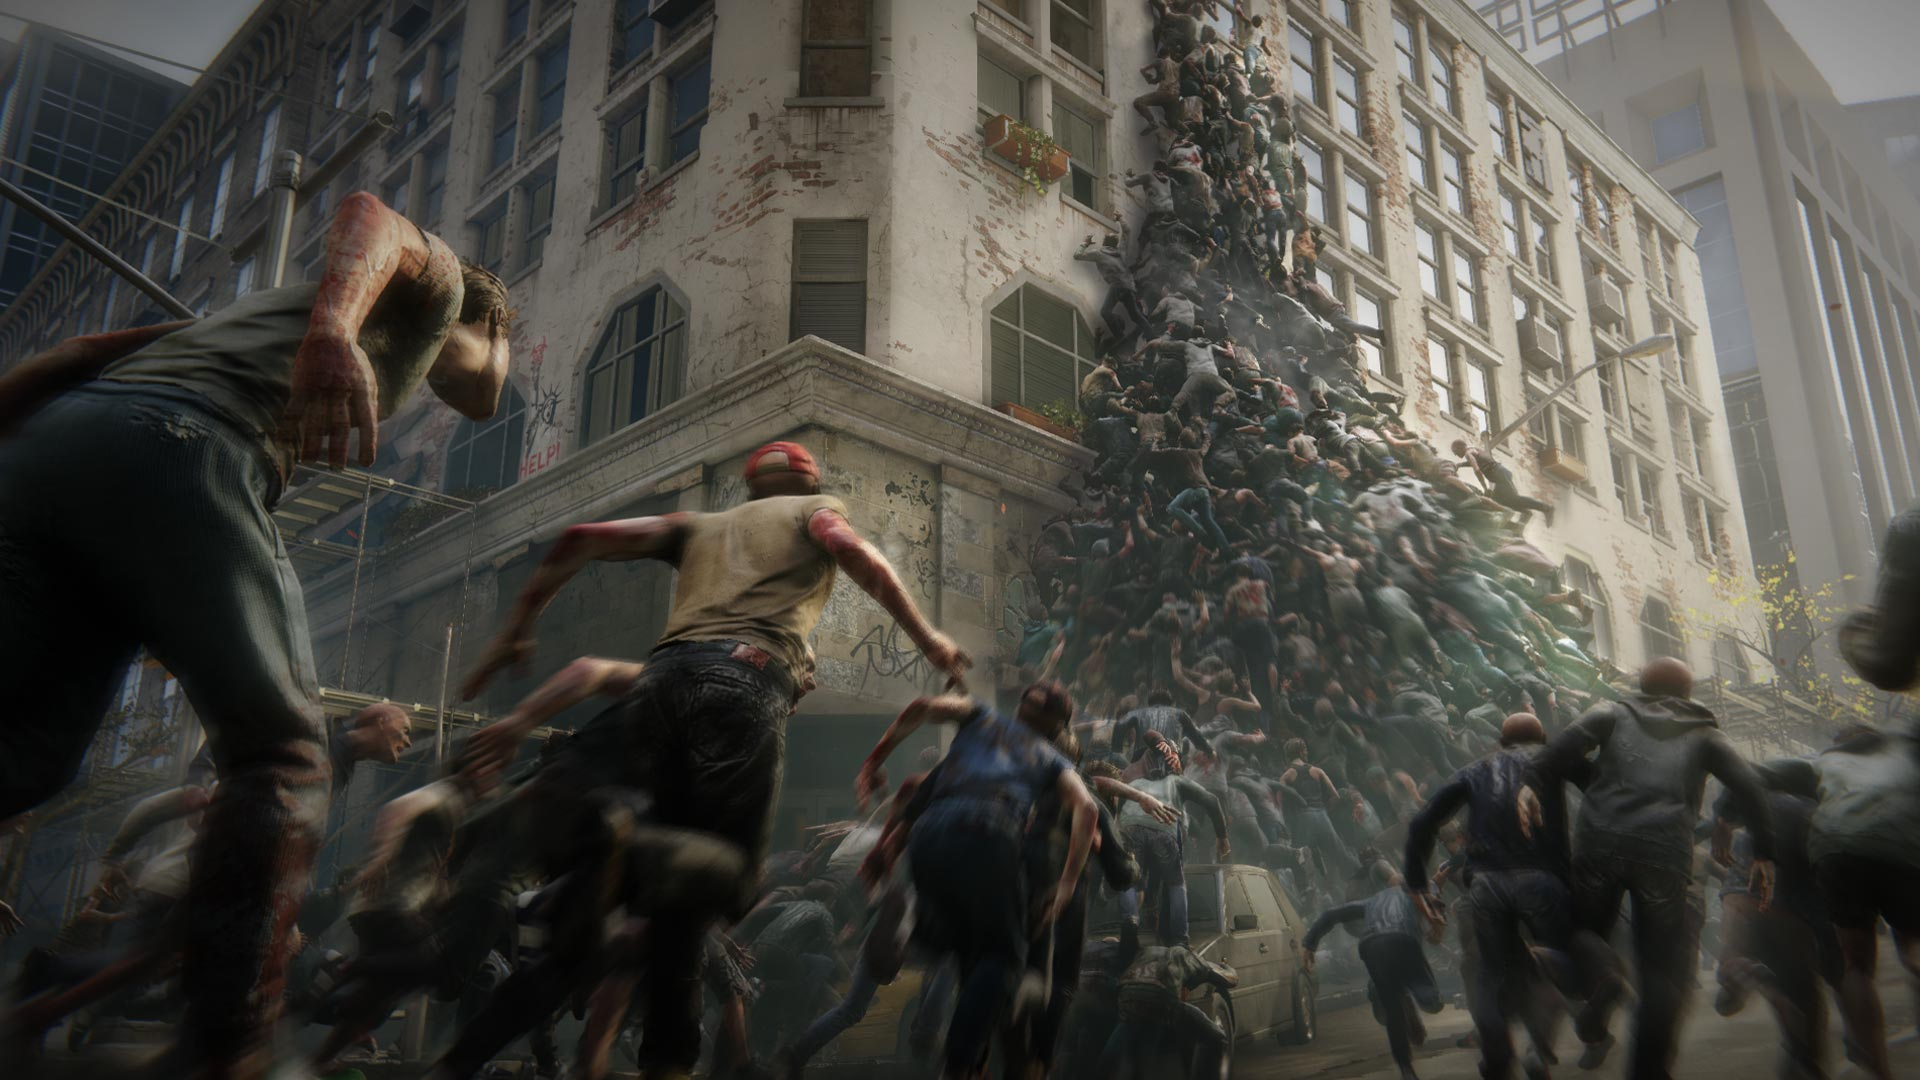 World War Z gameplay, news, and trailers